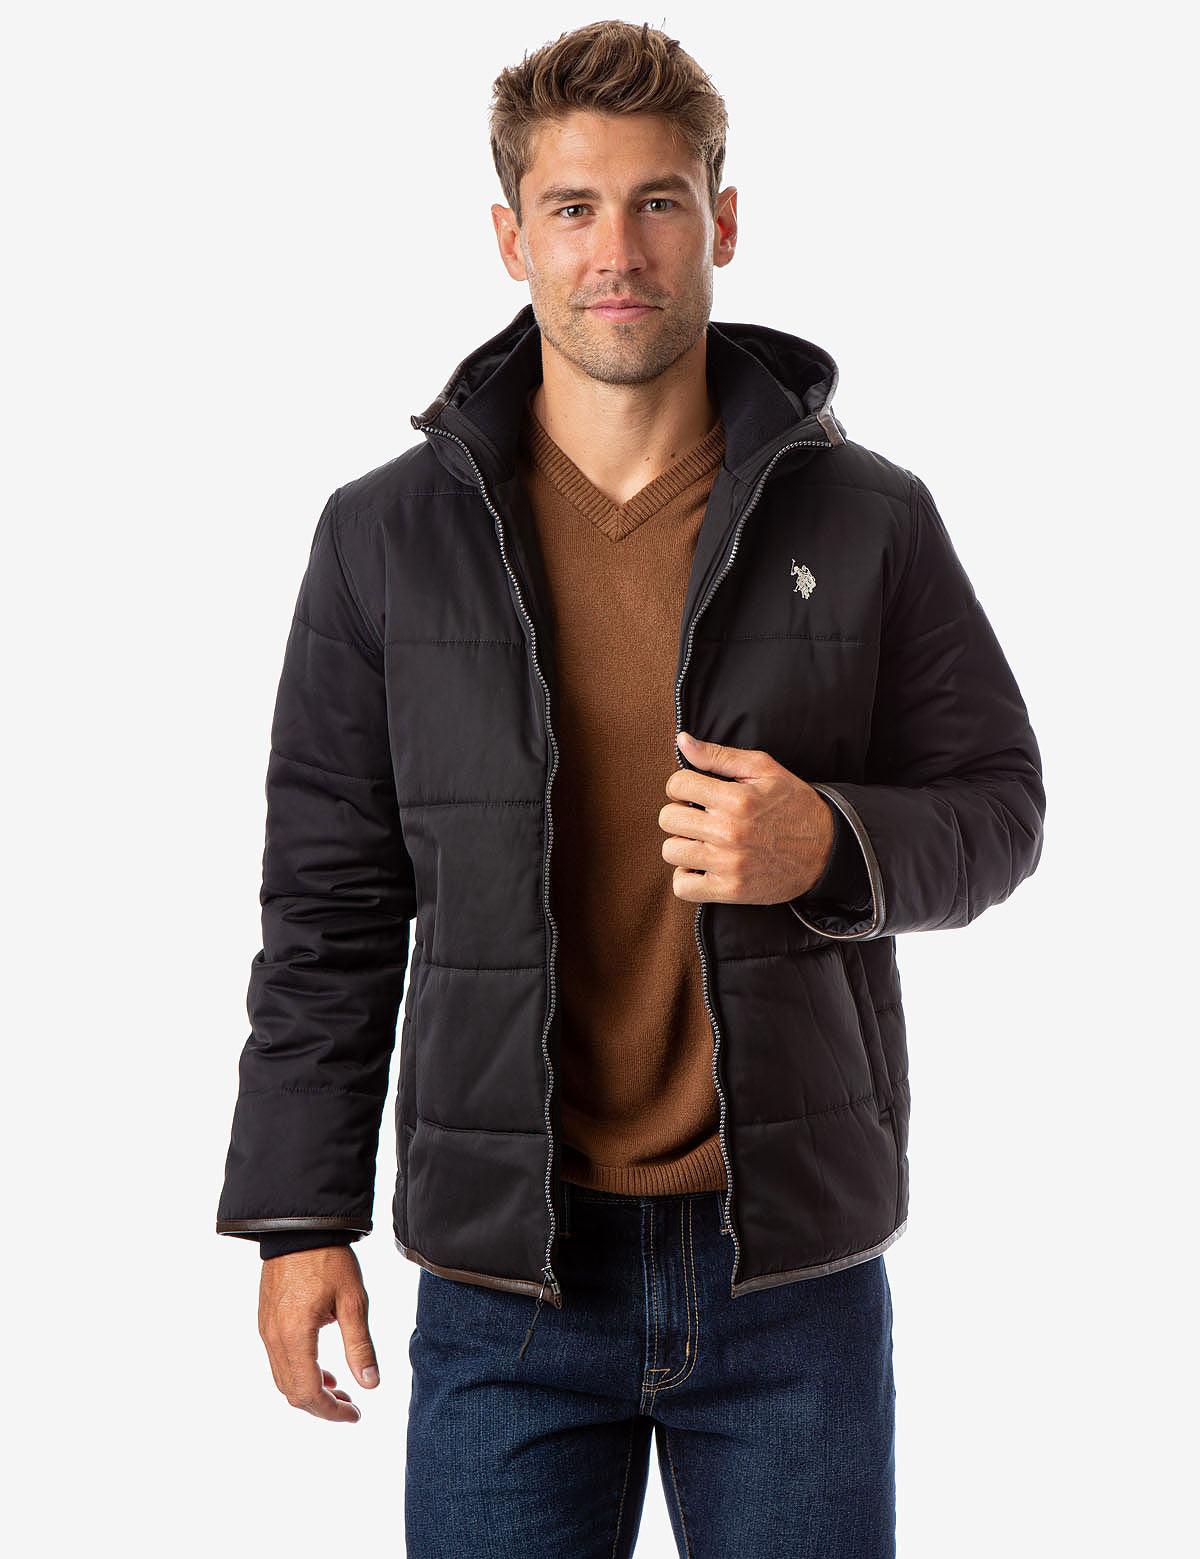 TRIM HOODED PUFFER JACKET - U.S. Polo Assn.